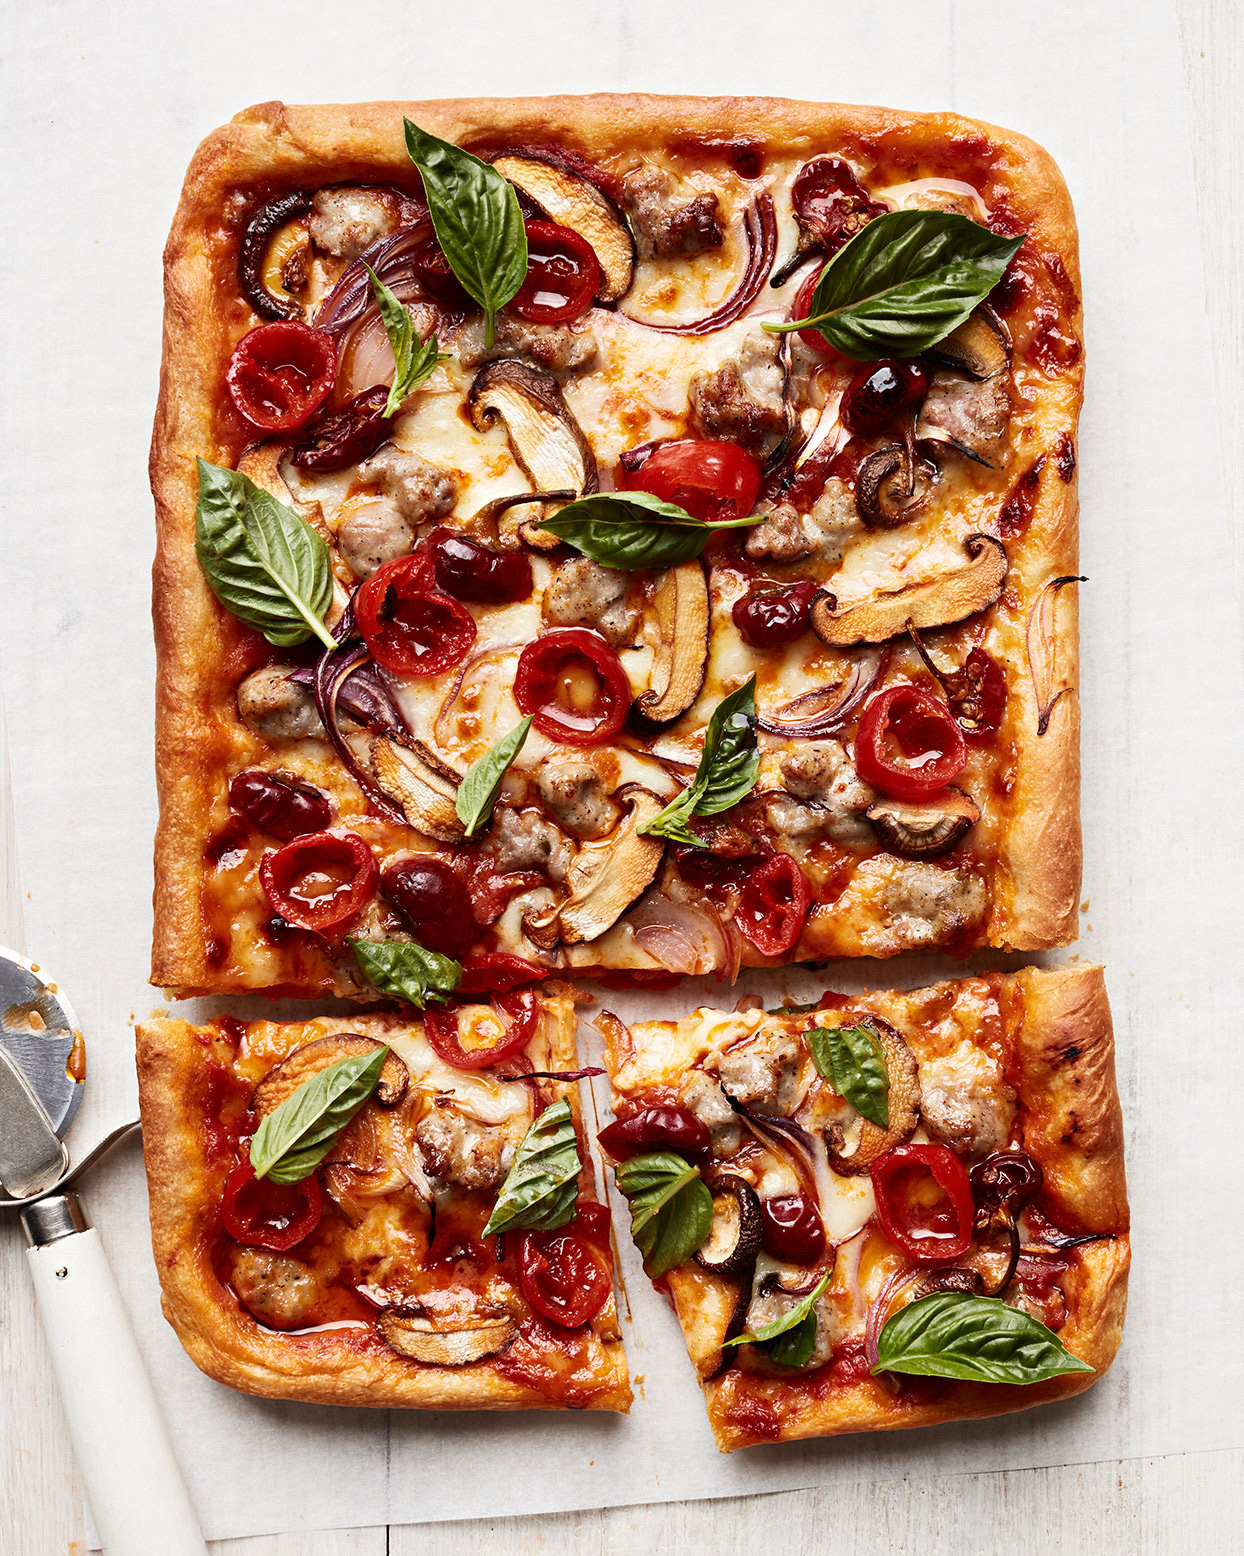 Crusts And Toppings Galore Our Best Pizza Recipes Martha Stewart